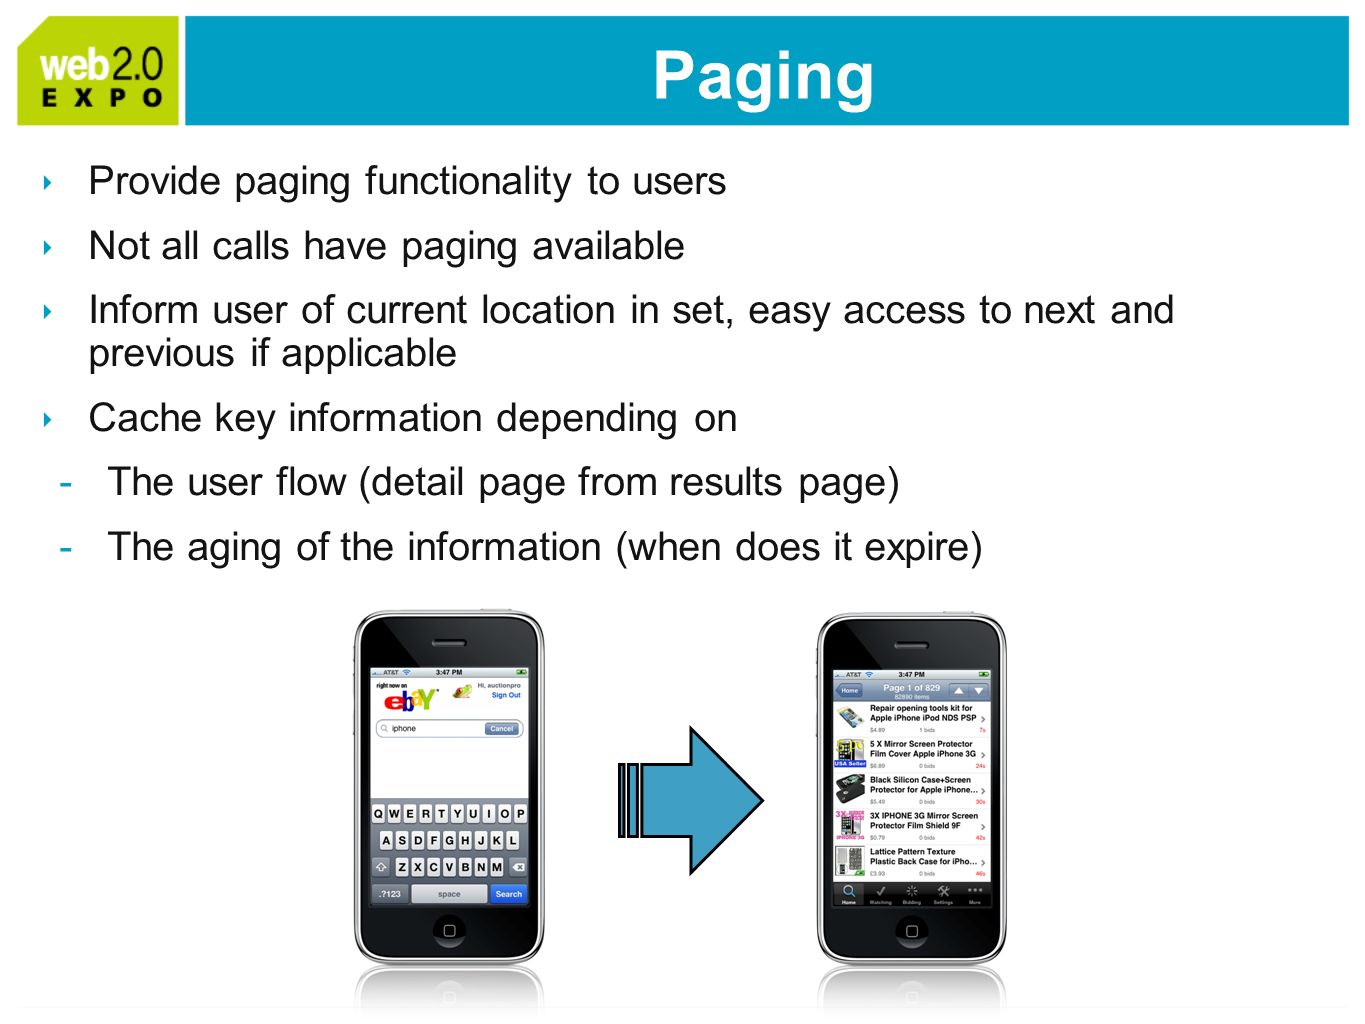 Paging Provide paging functionality to users Not all calls have paging available Inform user of current location in set, easy access to next and previous if applicable Cache key information depending on -The user flow (detail page from results page) -The aging of the information (when does it expire)